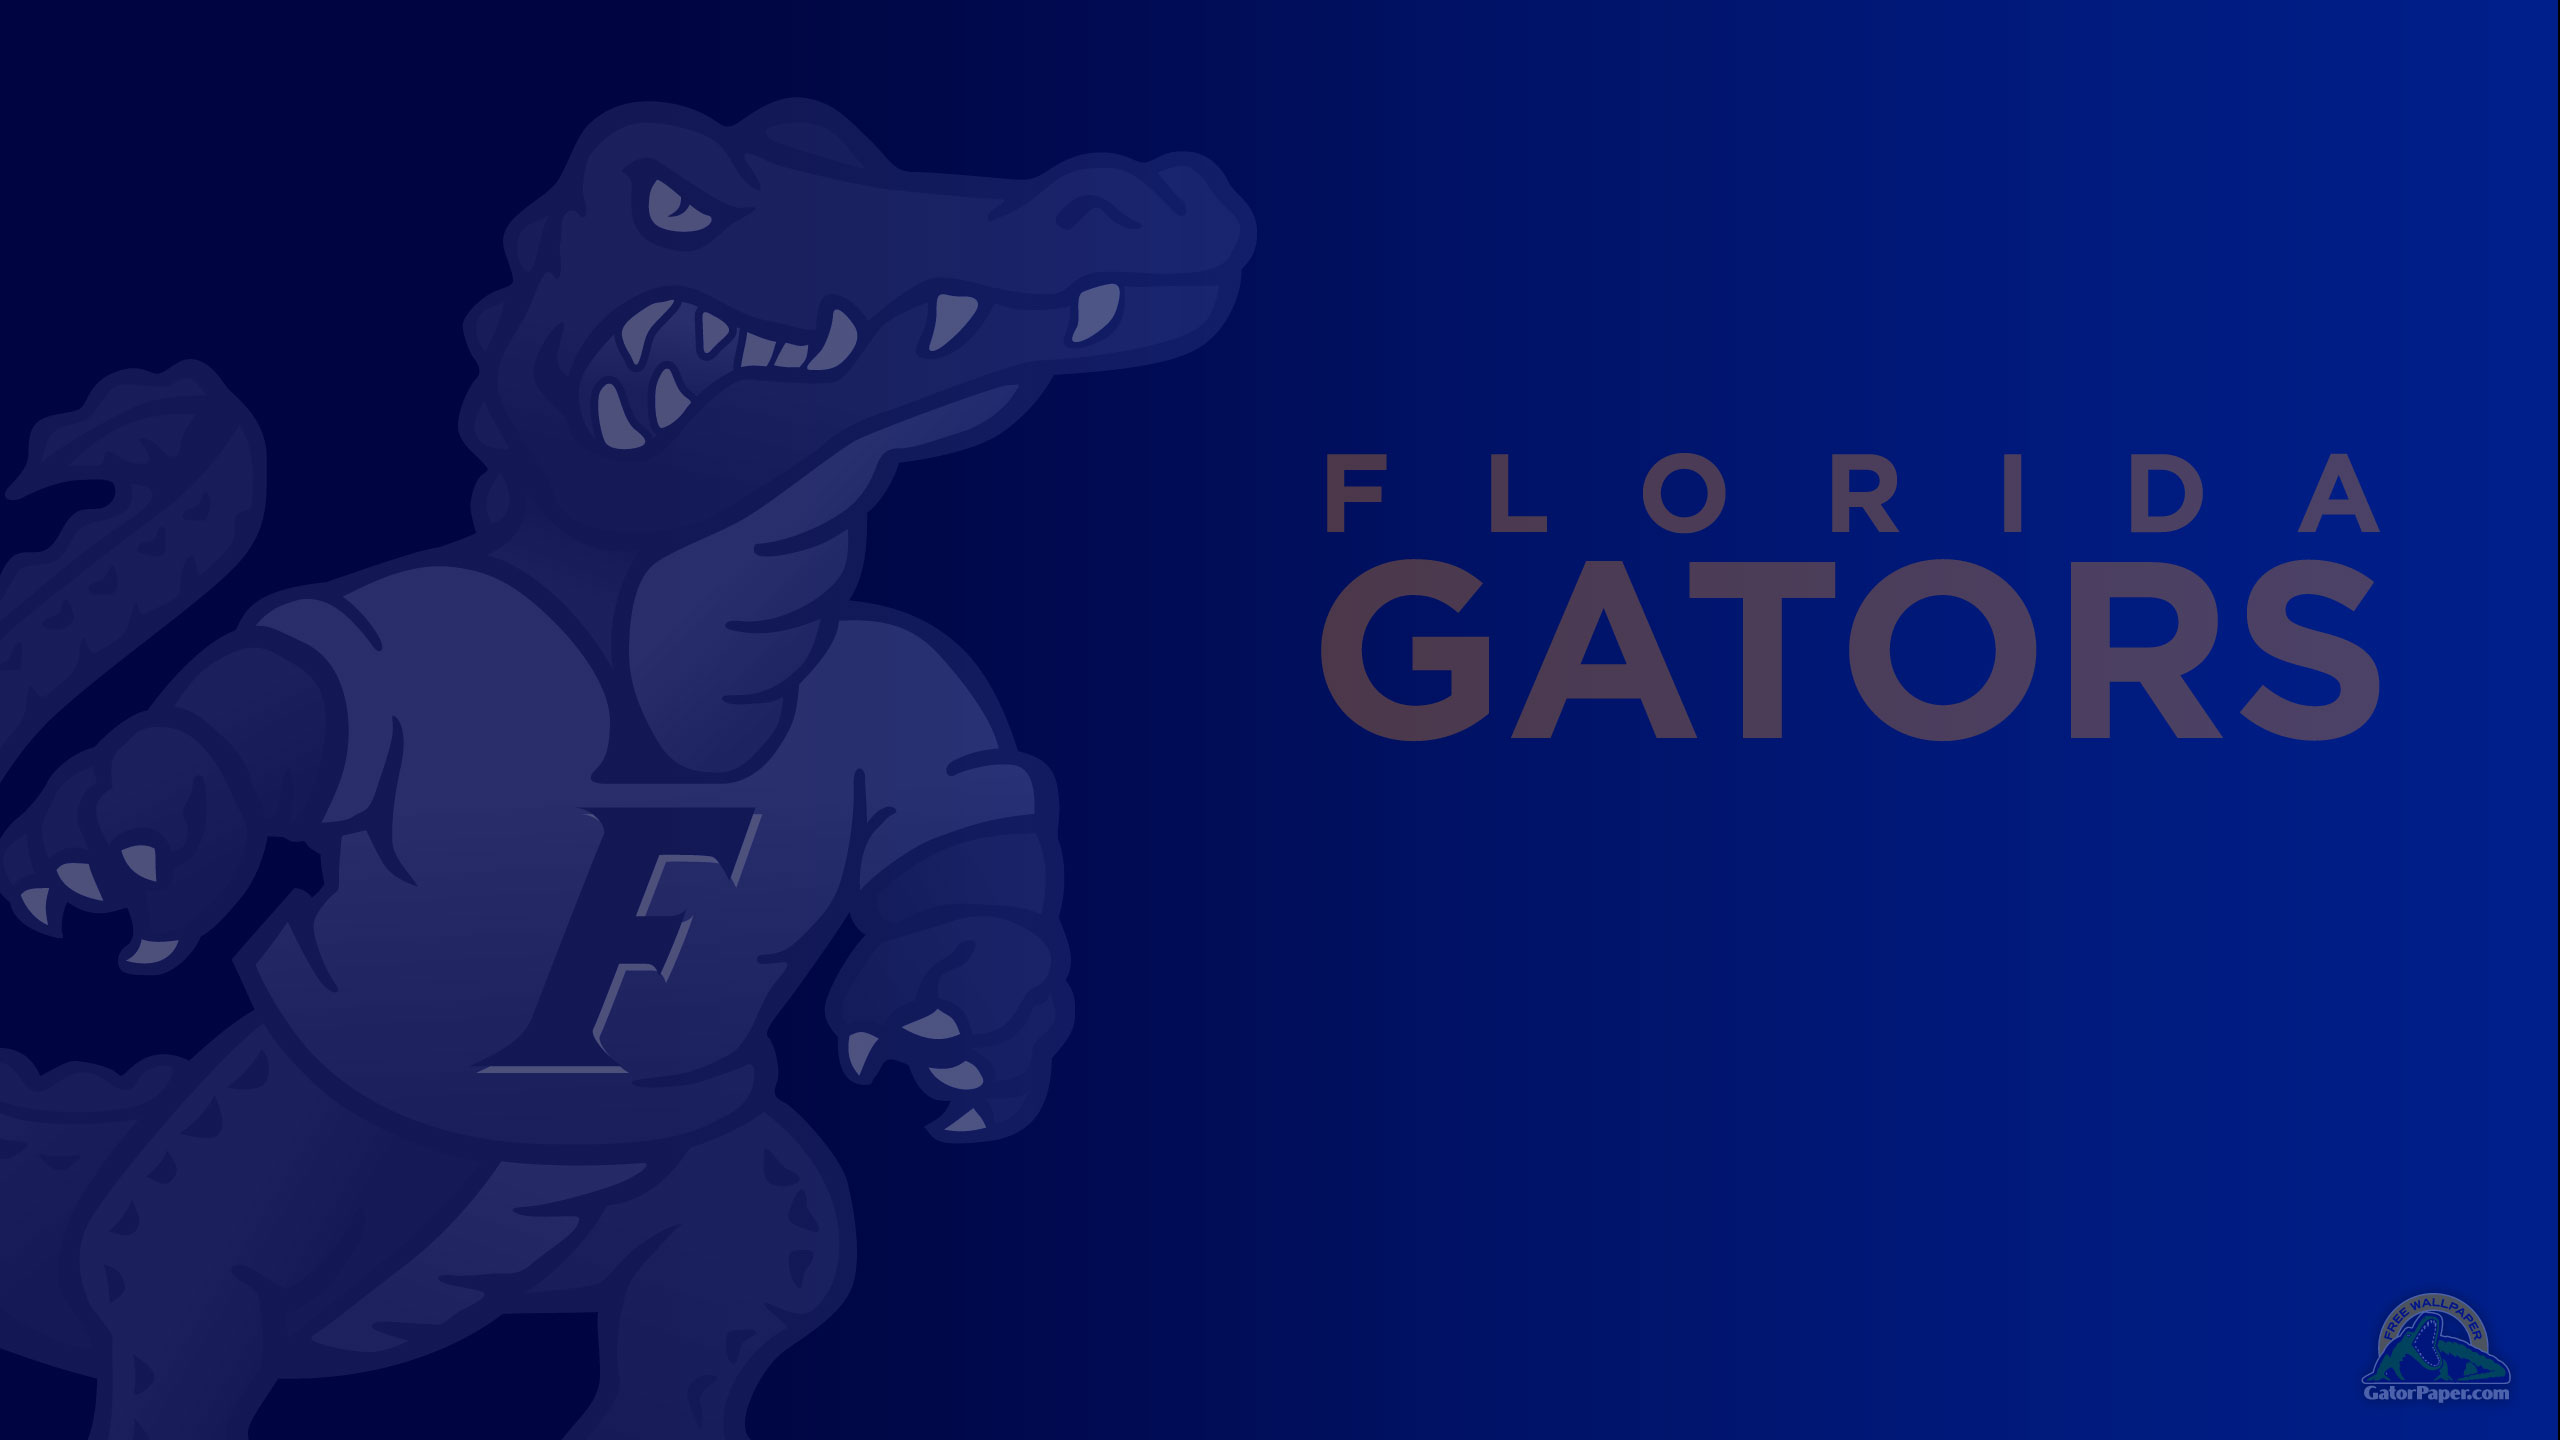 mobile wallpapersfeedFlorida Gators Desktop Wallpaper 2560x1440